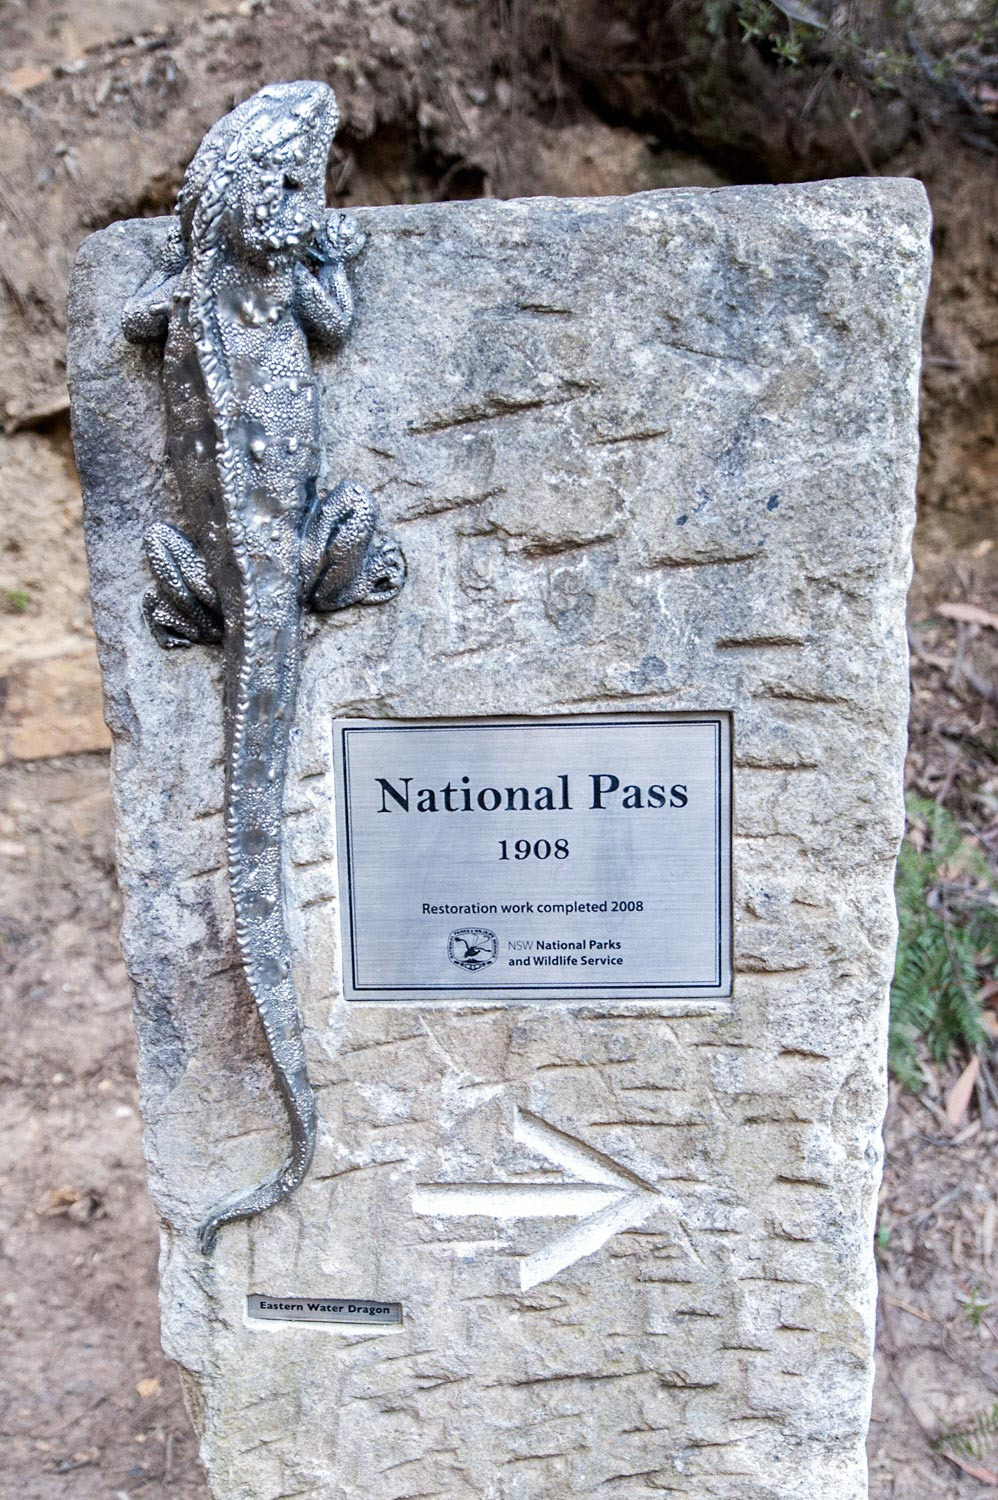 Warren-Hinder-LR-Goanna-Sign-National-Pass.jpg